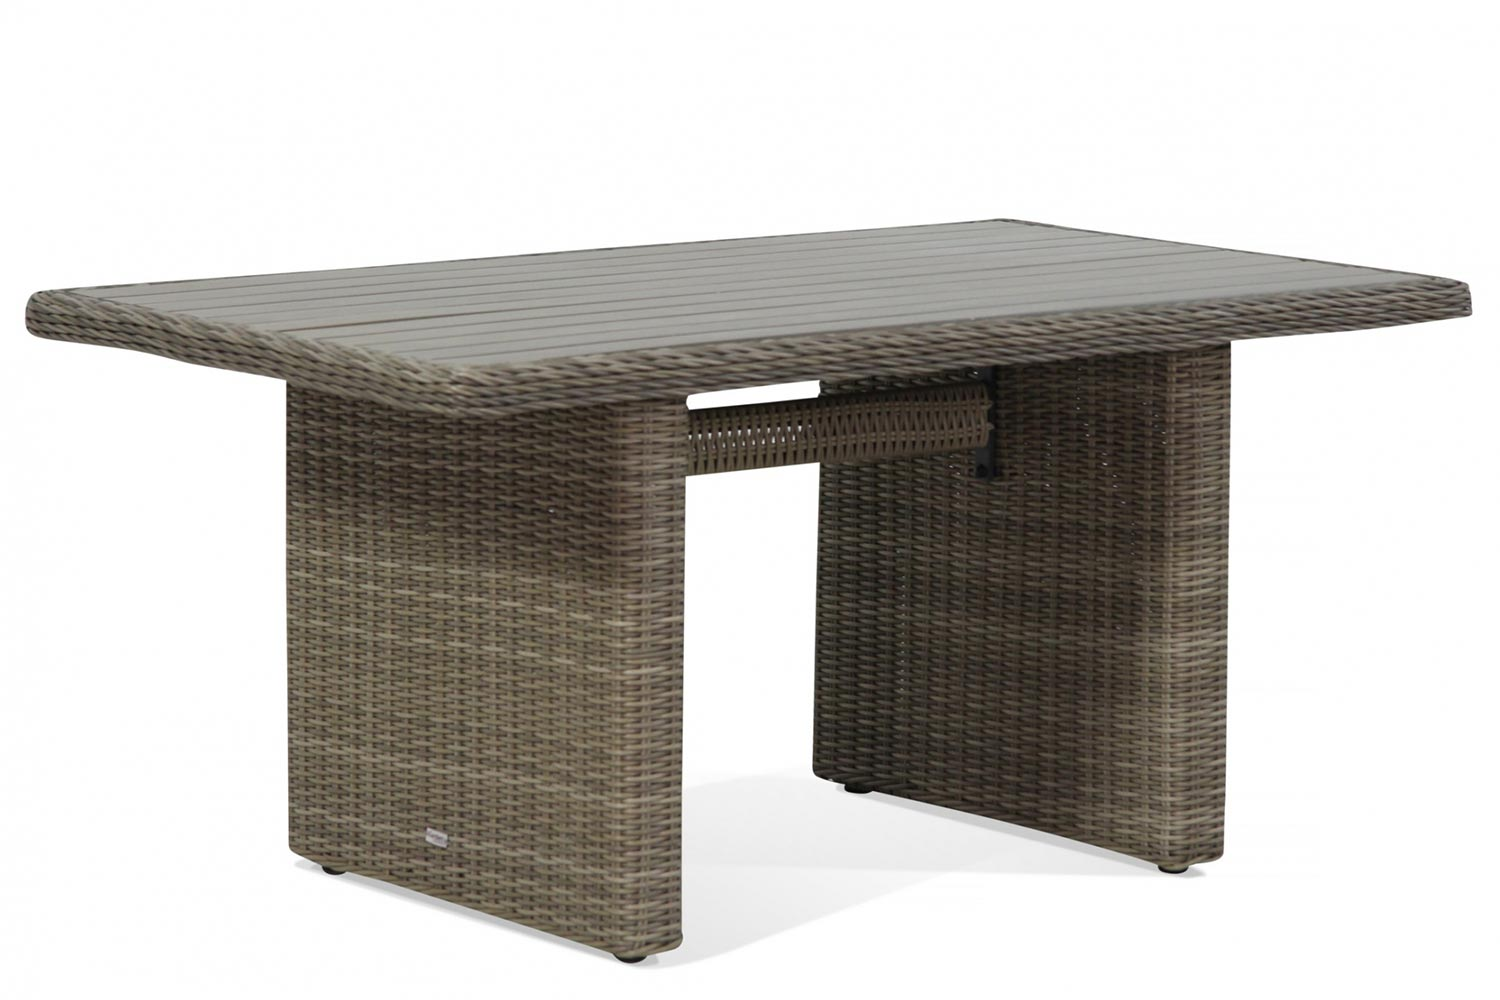 Garden Collections Toronto lounge/dining tuintafel 140 x 80 cm